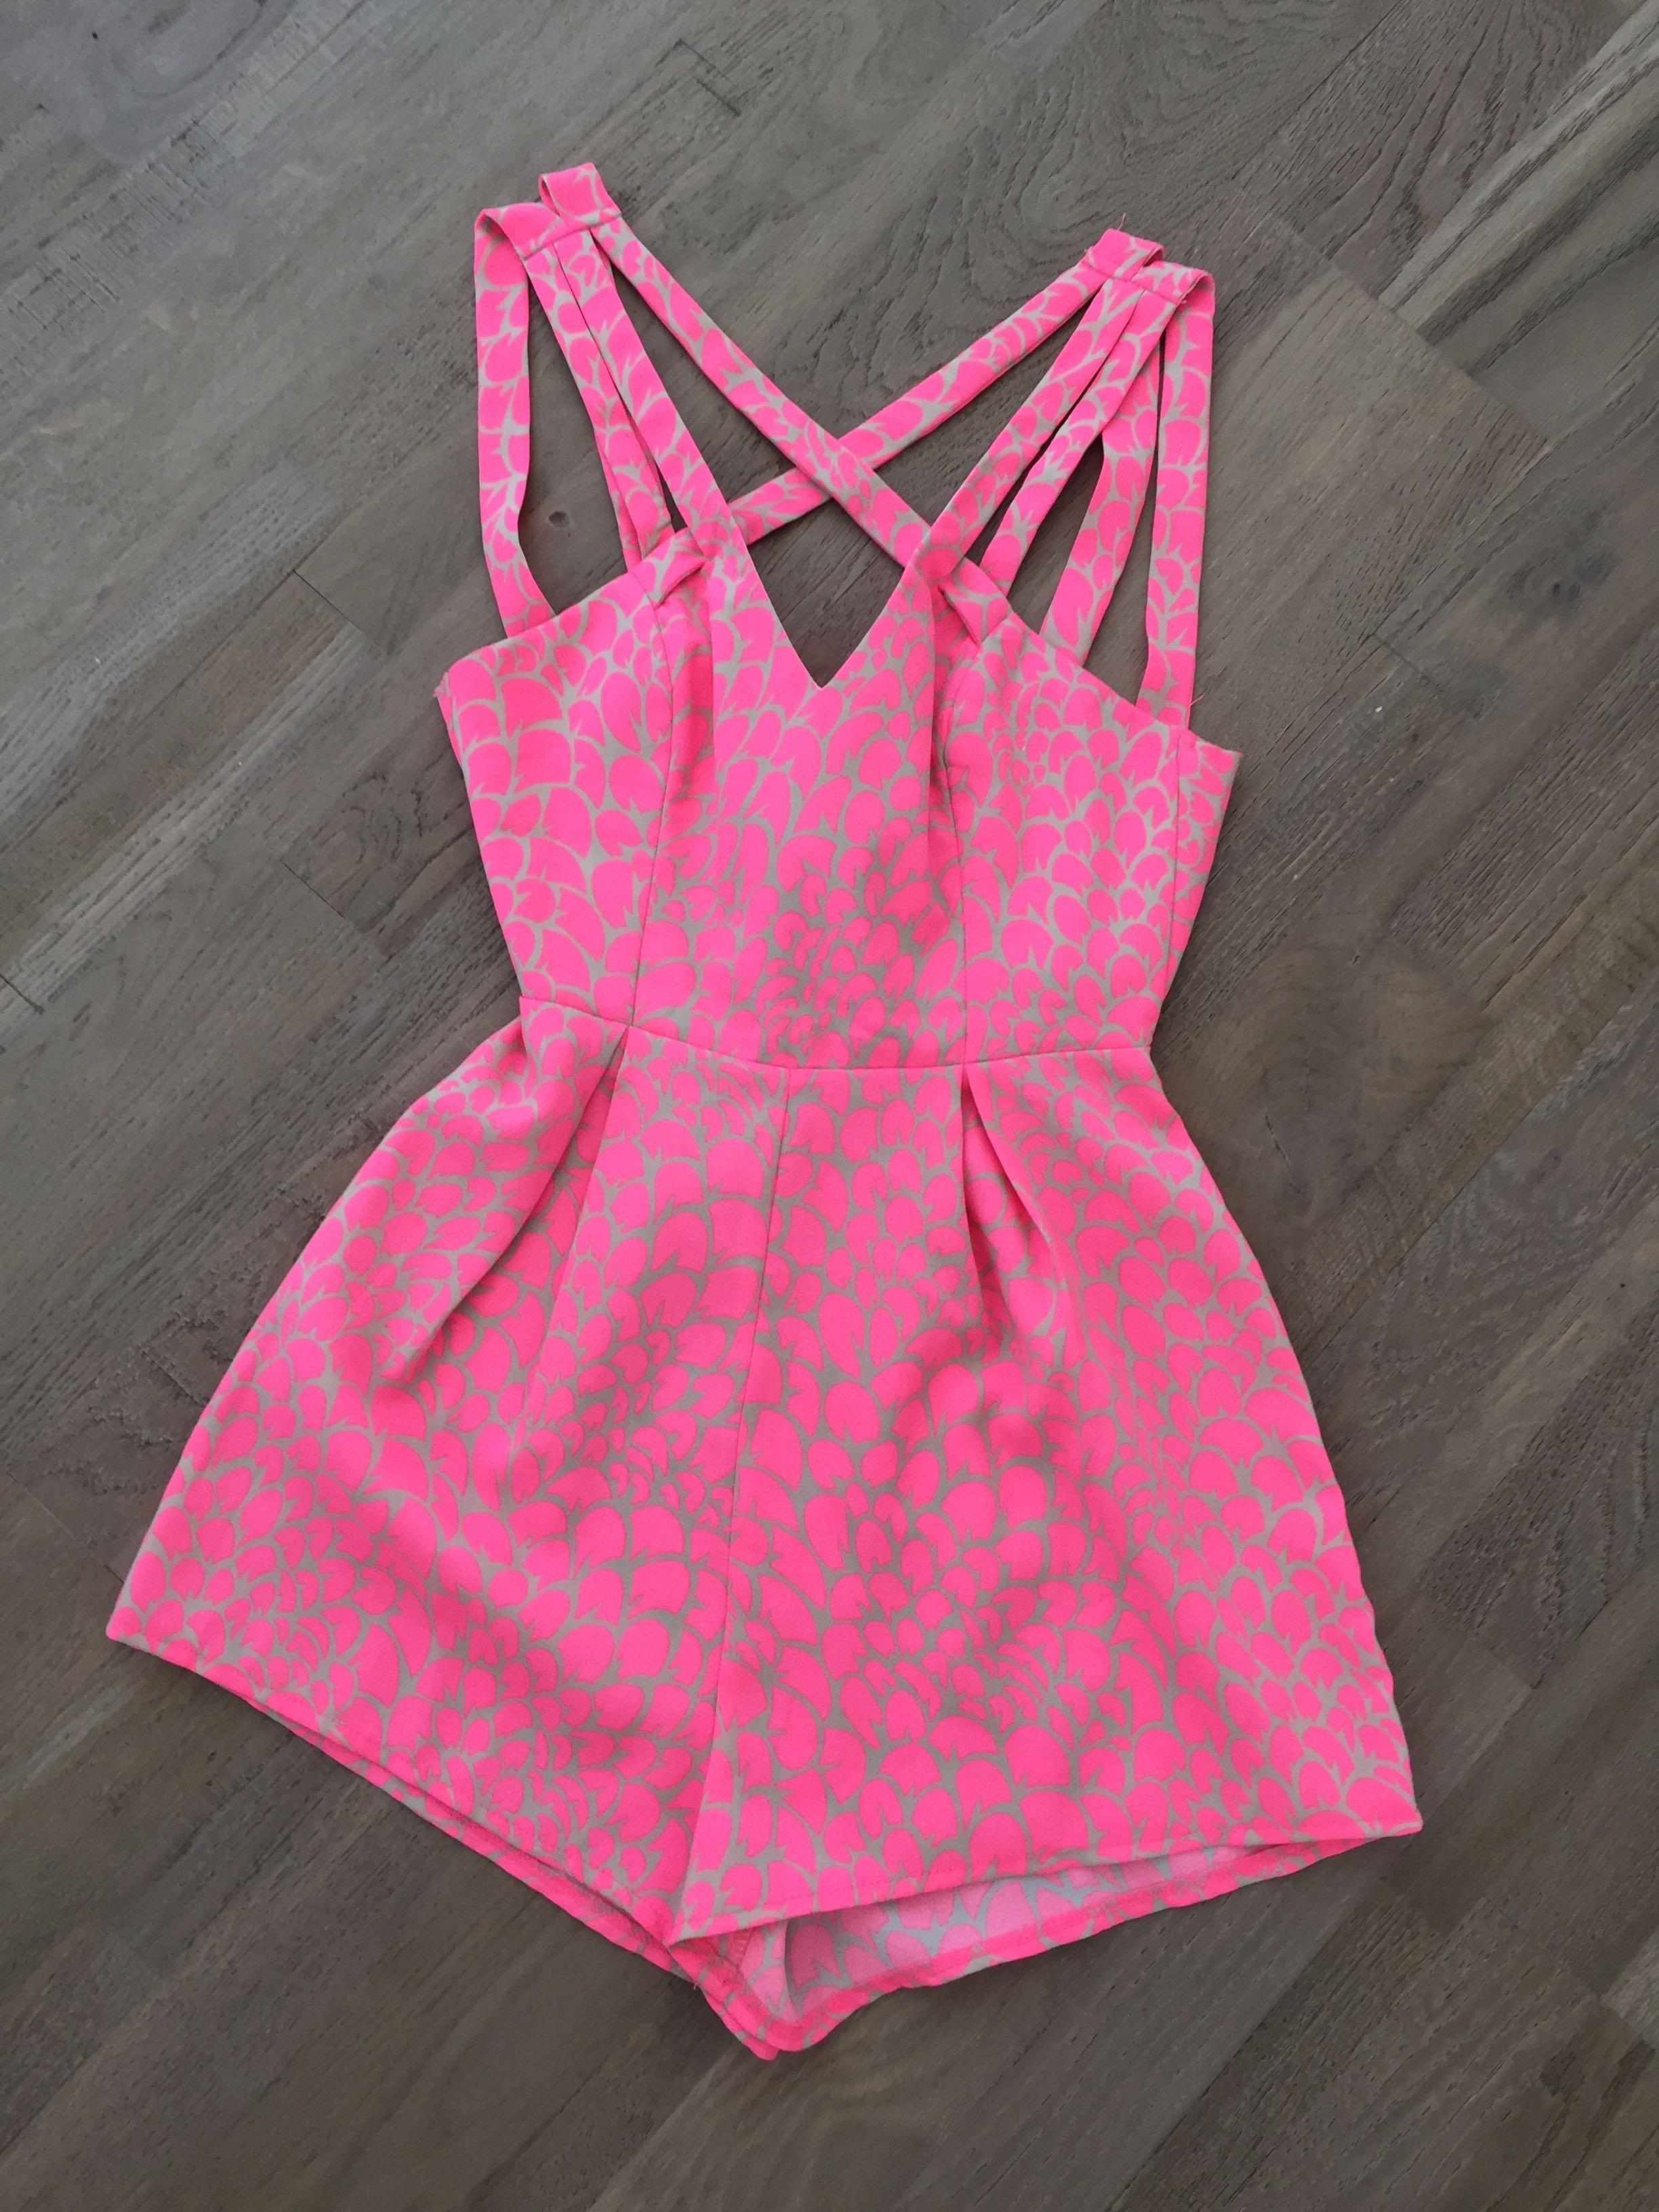 Size 6 pink tie up back playsuit. Excellent condition